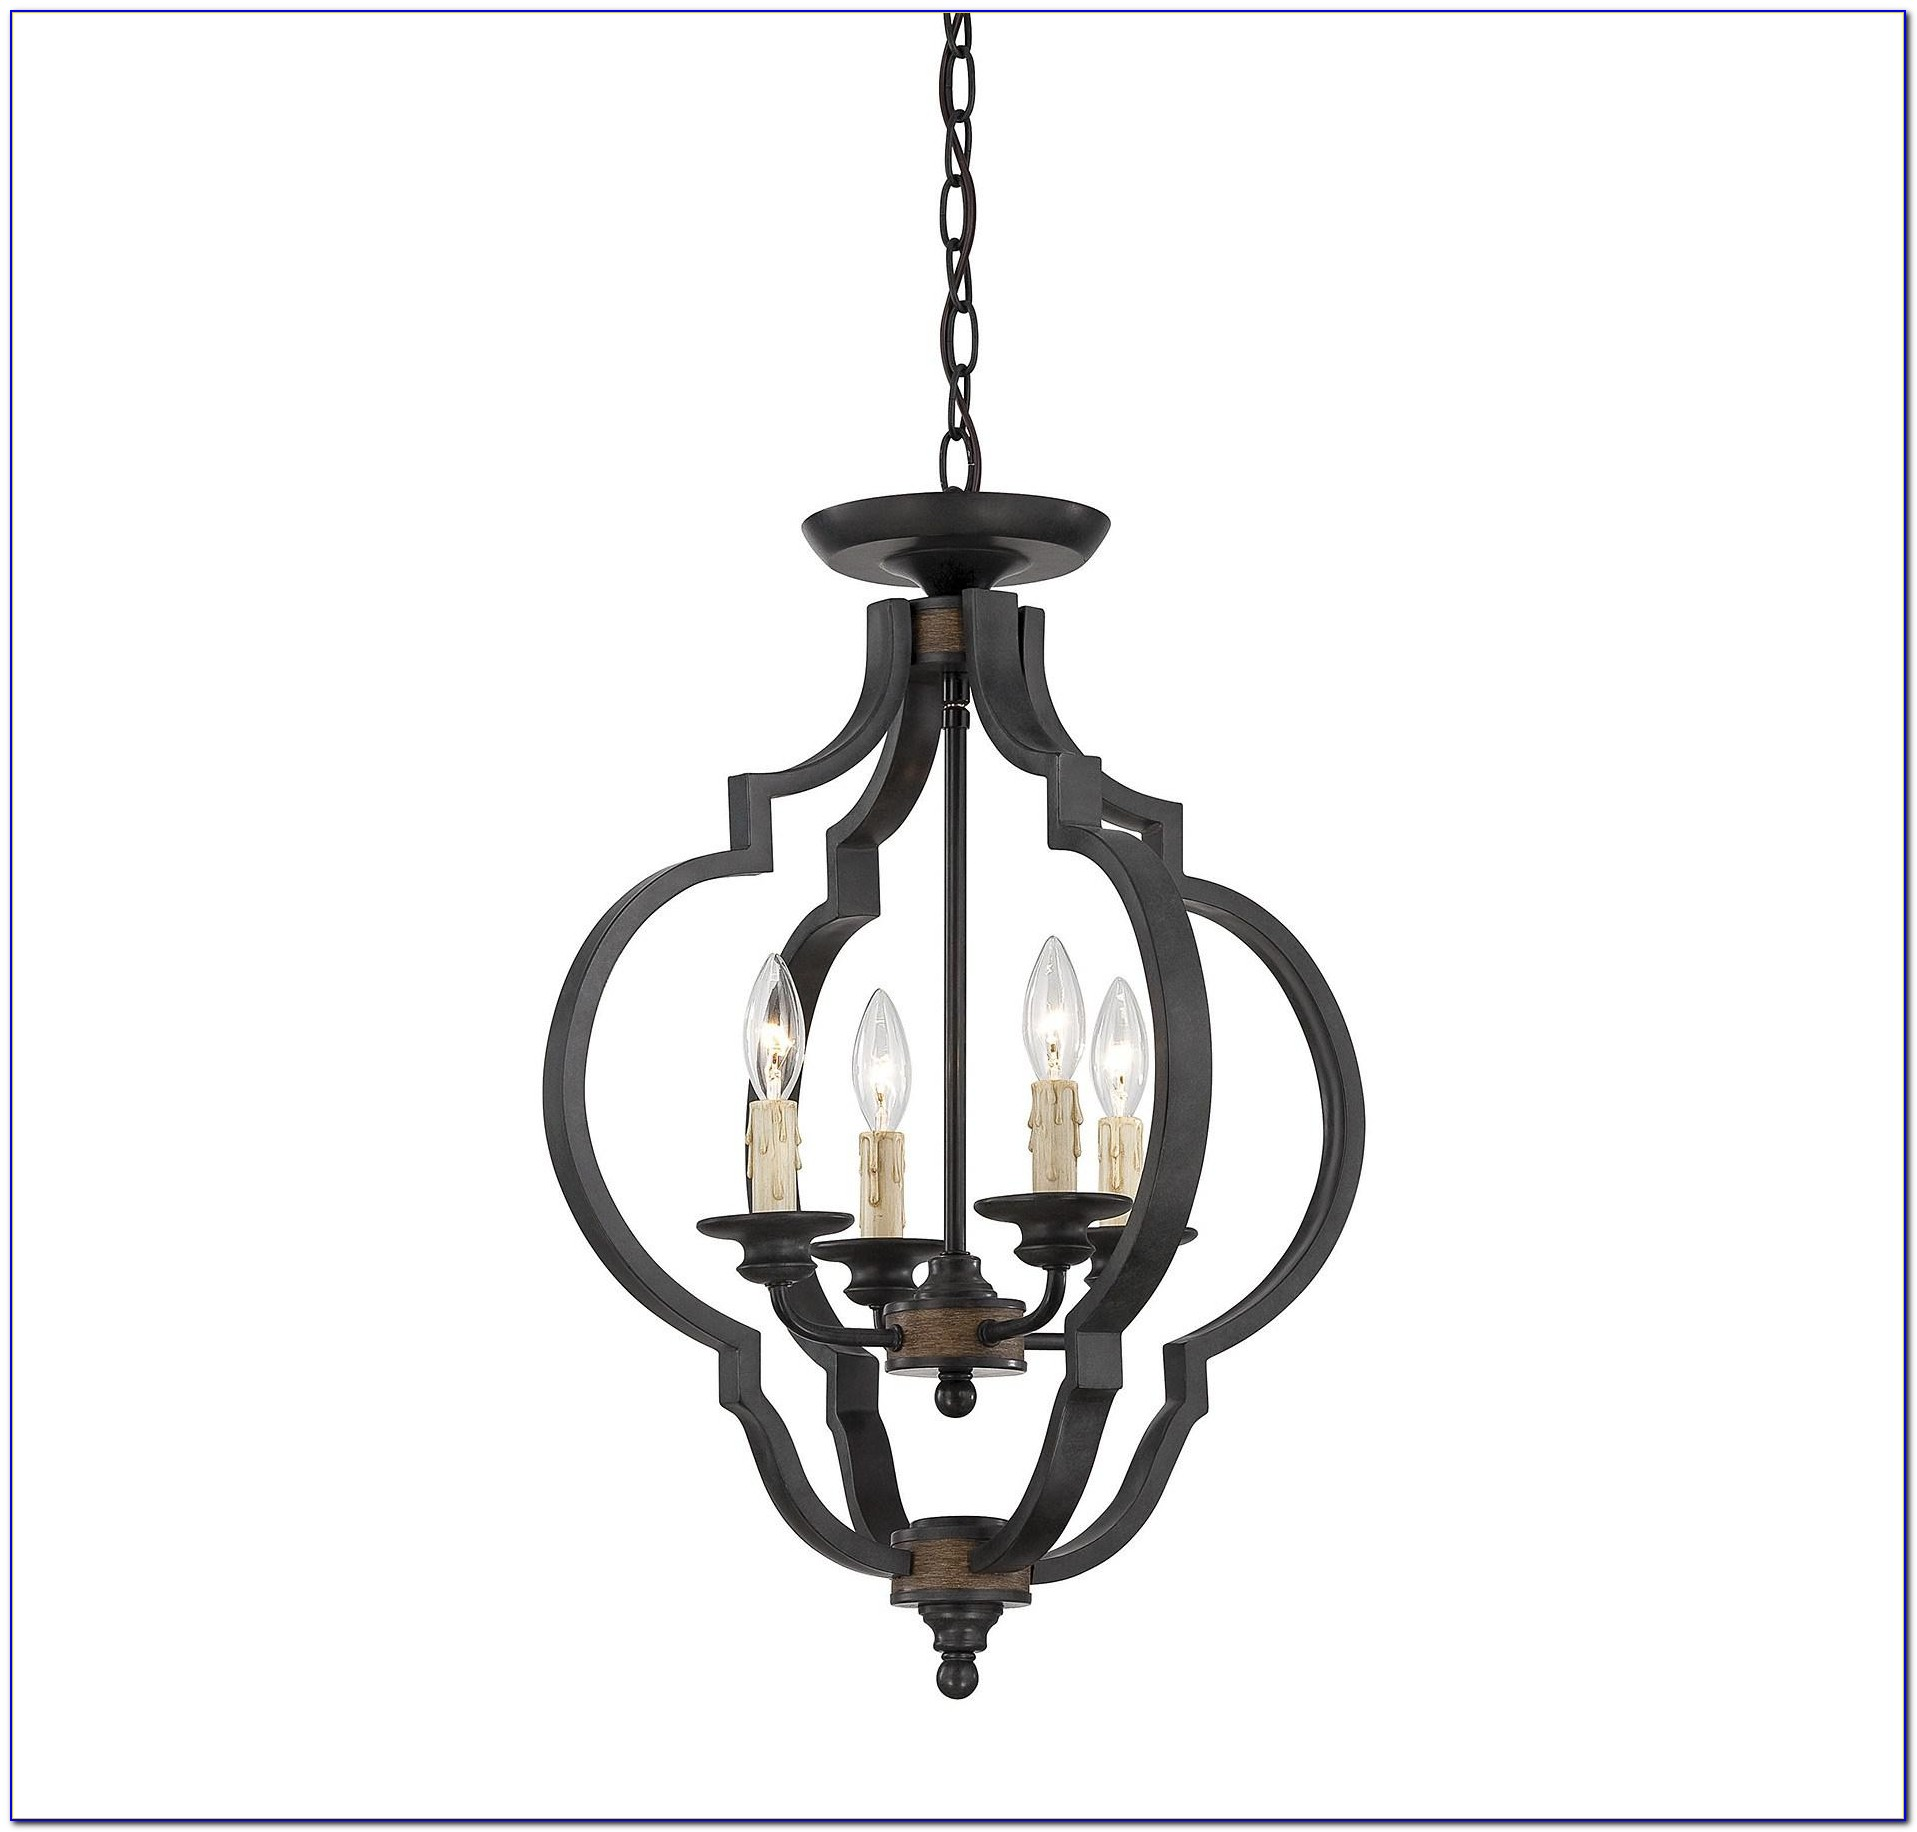 Wrought Iron Ceiling Light Fixtures